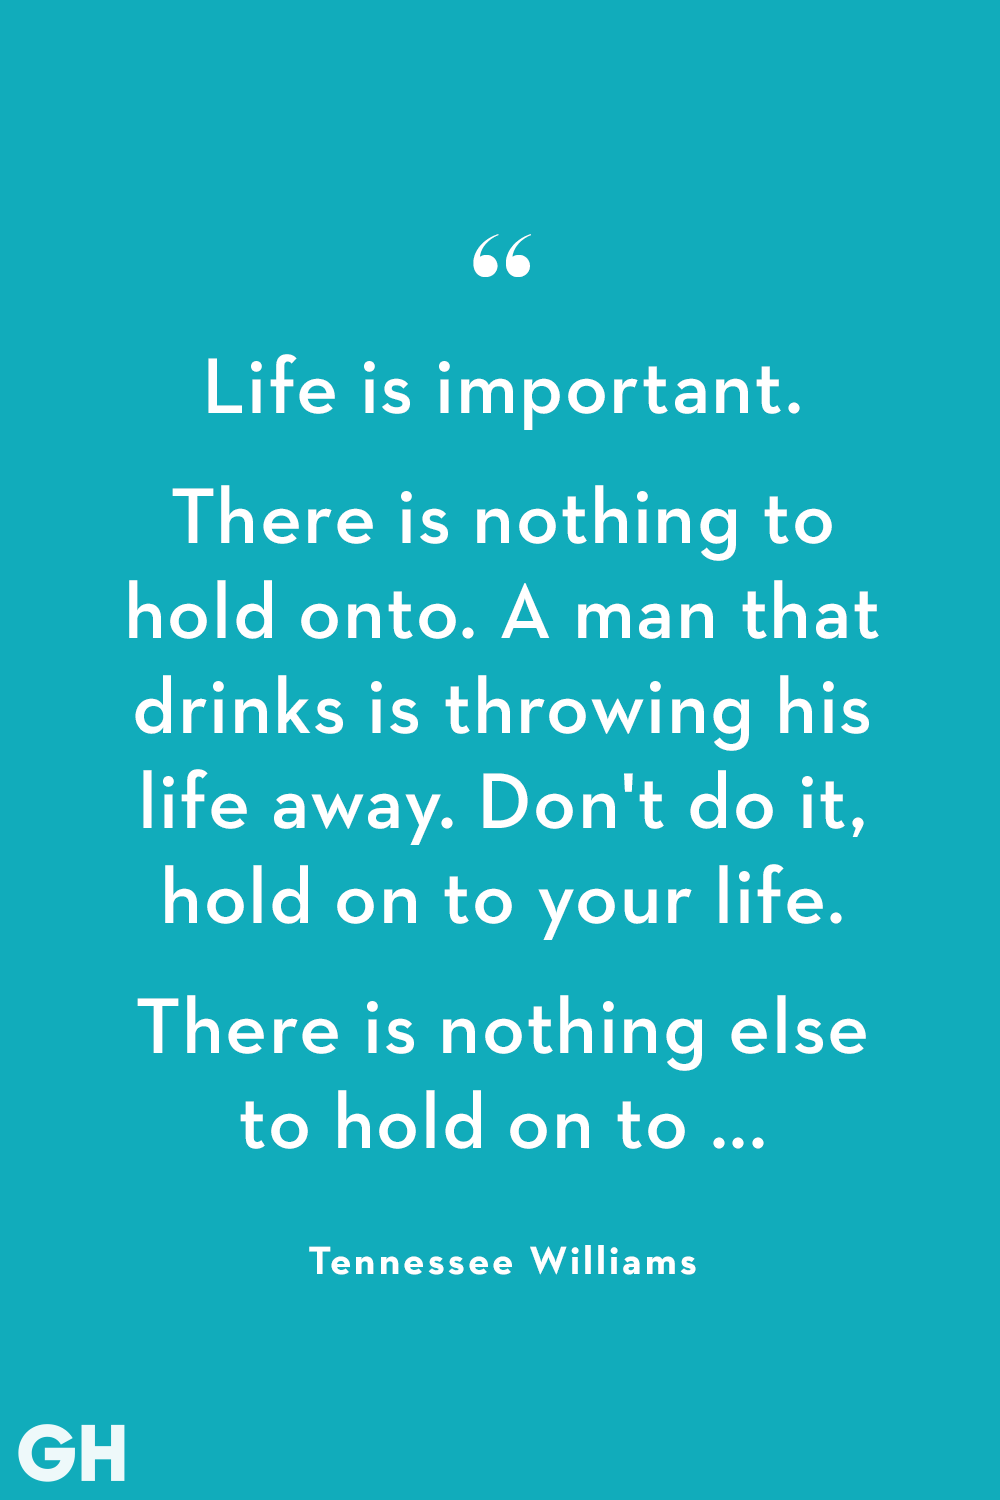 13 Alcohol Quotes - Best Quotes About Alcohol for